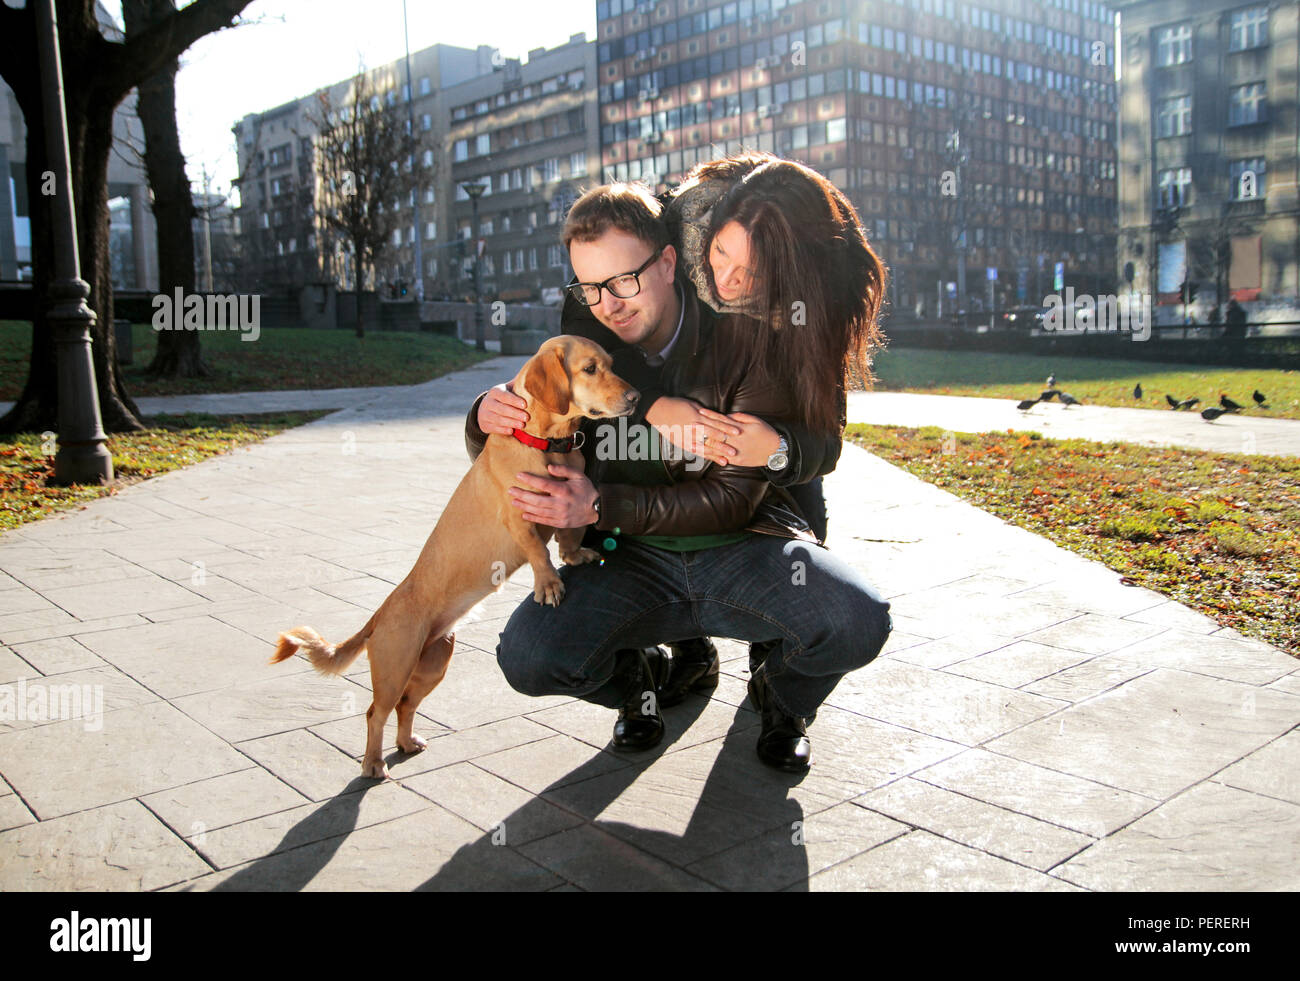 Girlfriend hugging young man while he crouching and cuddle the dog and all enjoy in a beautiful day in the park. Young happy couple with dog enjoy. - Stock Image